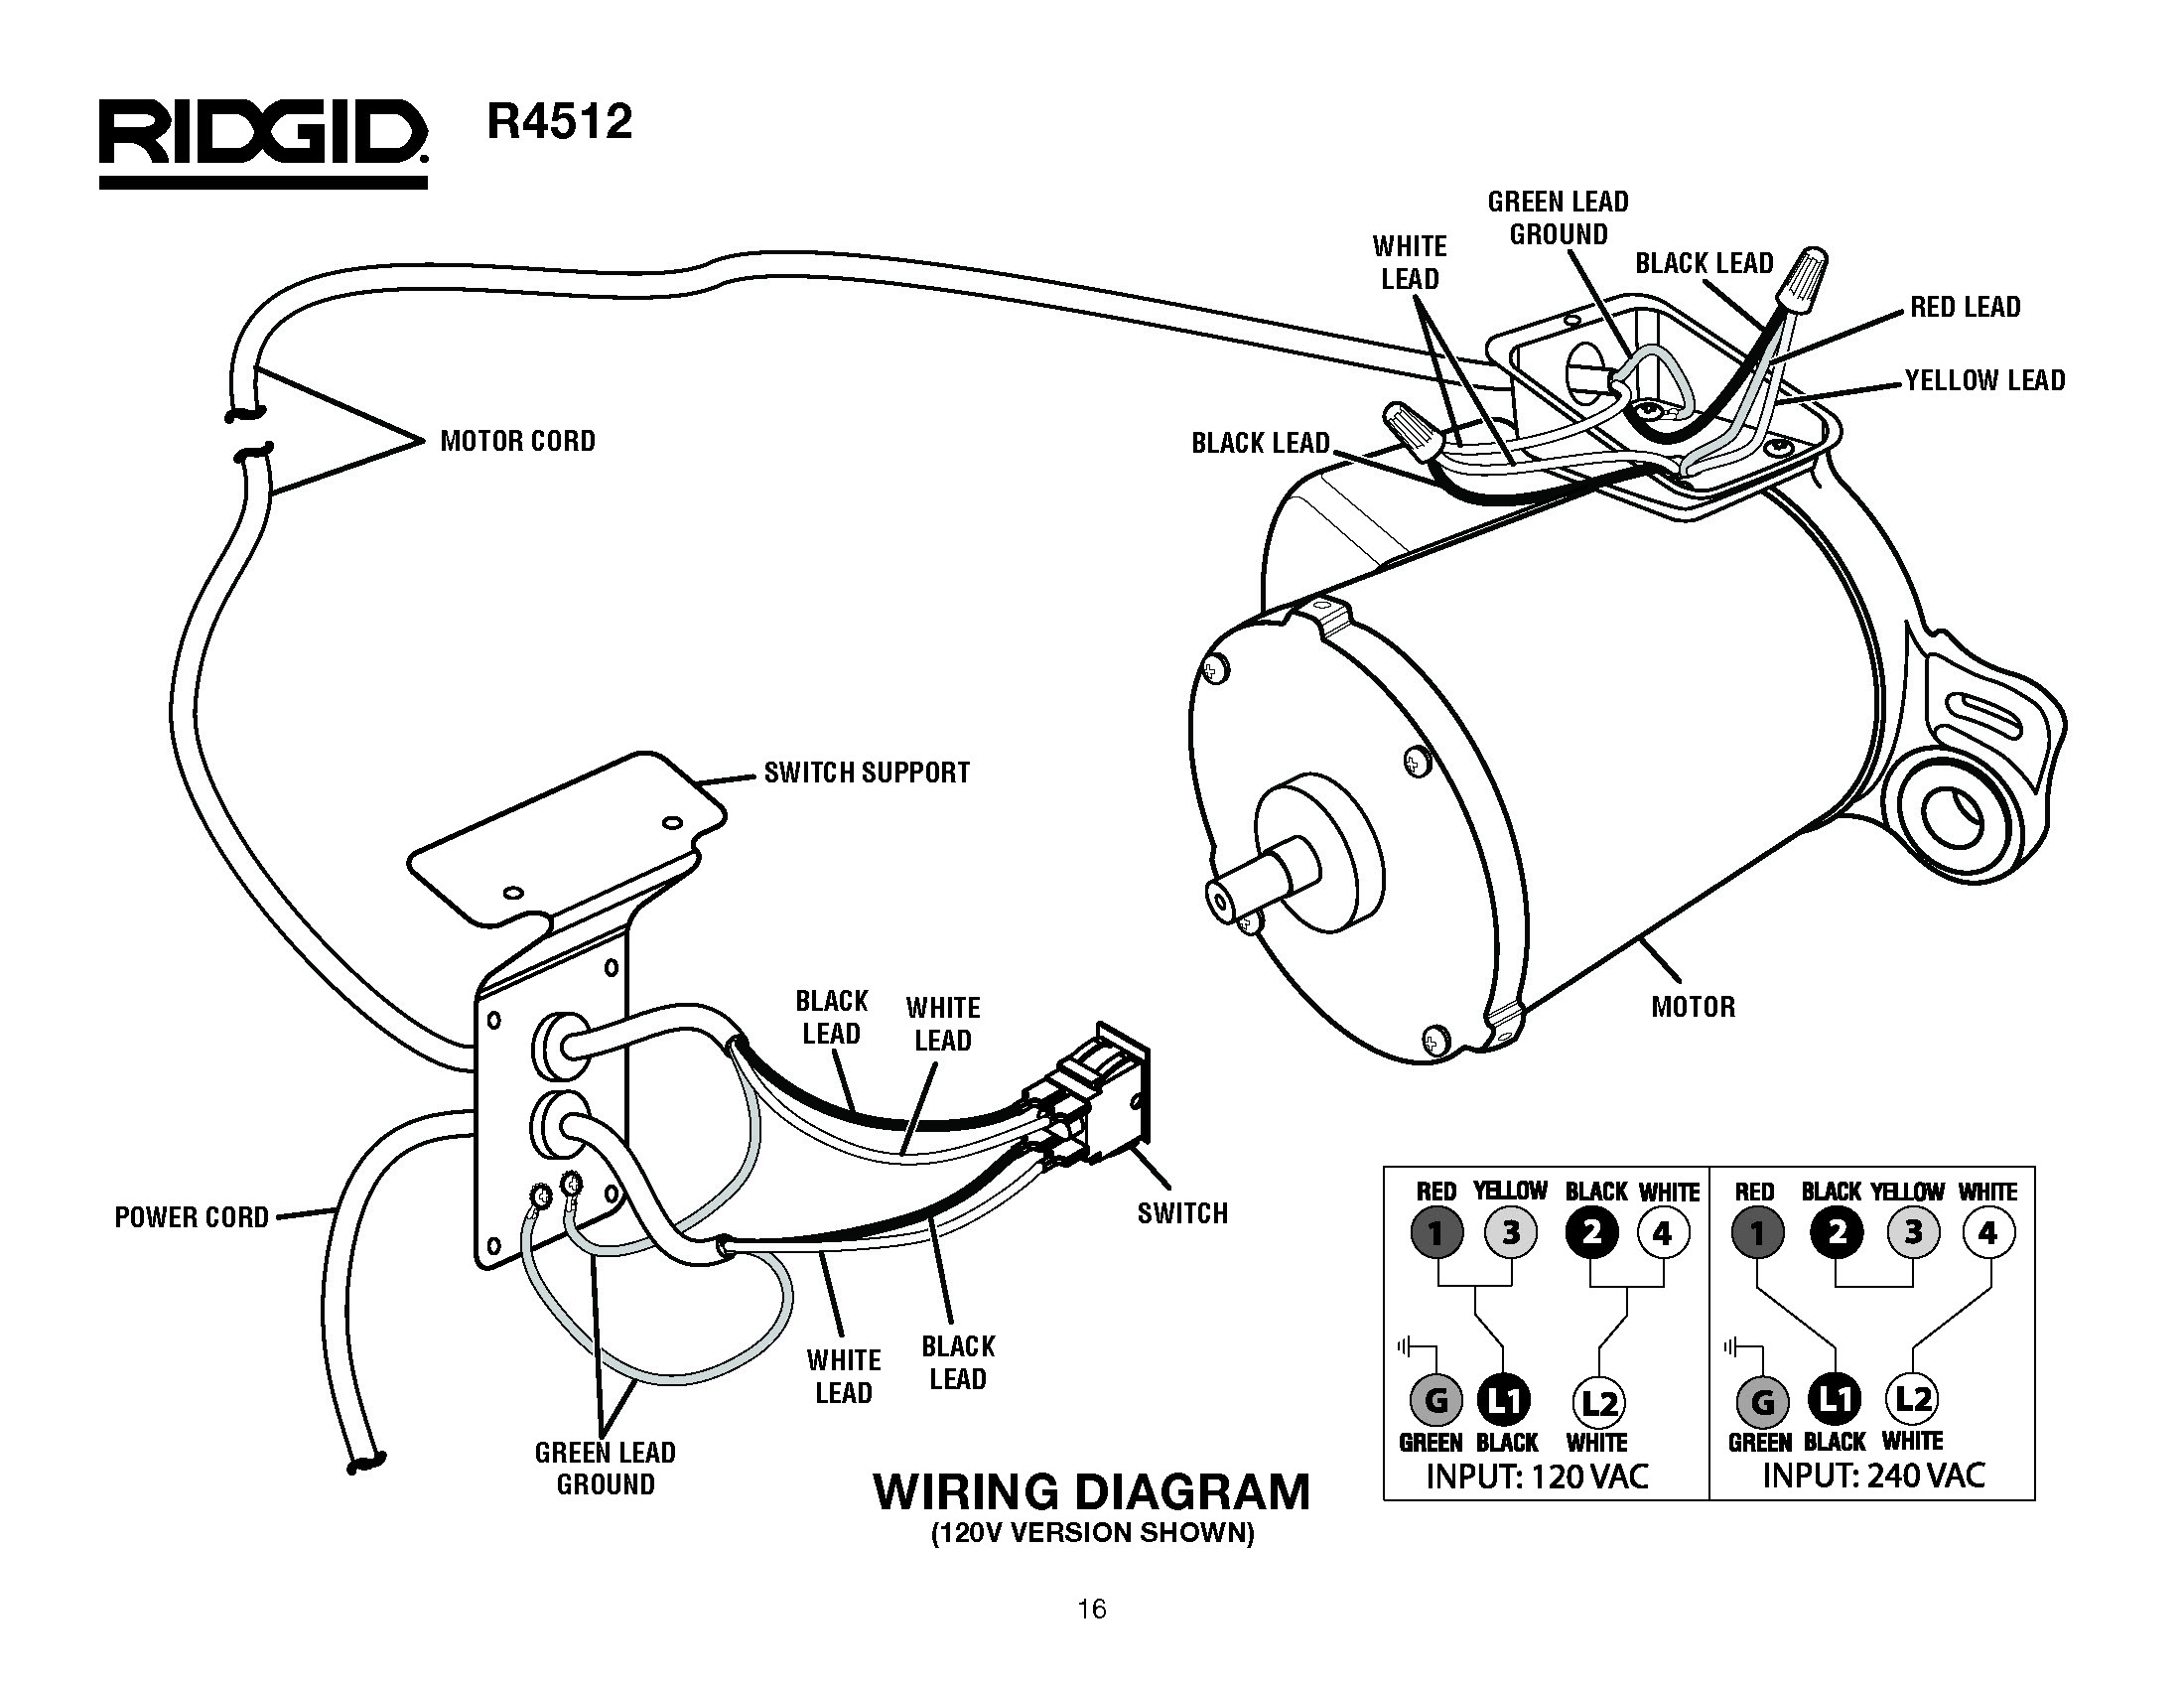 RIDGID_parts_R4512_saw_wg r4512 ridgid table saw parts ryobi 10 inch table saw switch wiring diagram at eliteediting.co